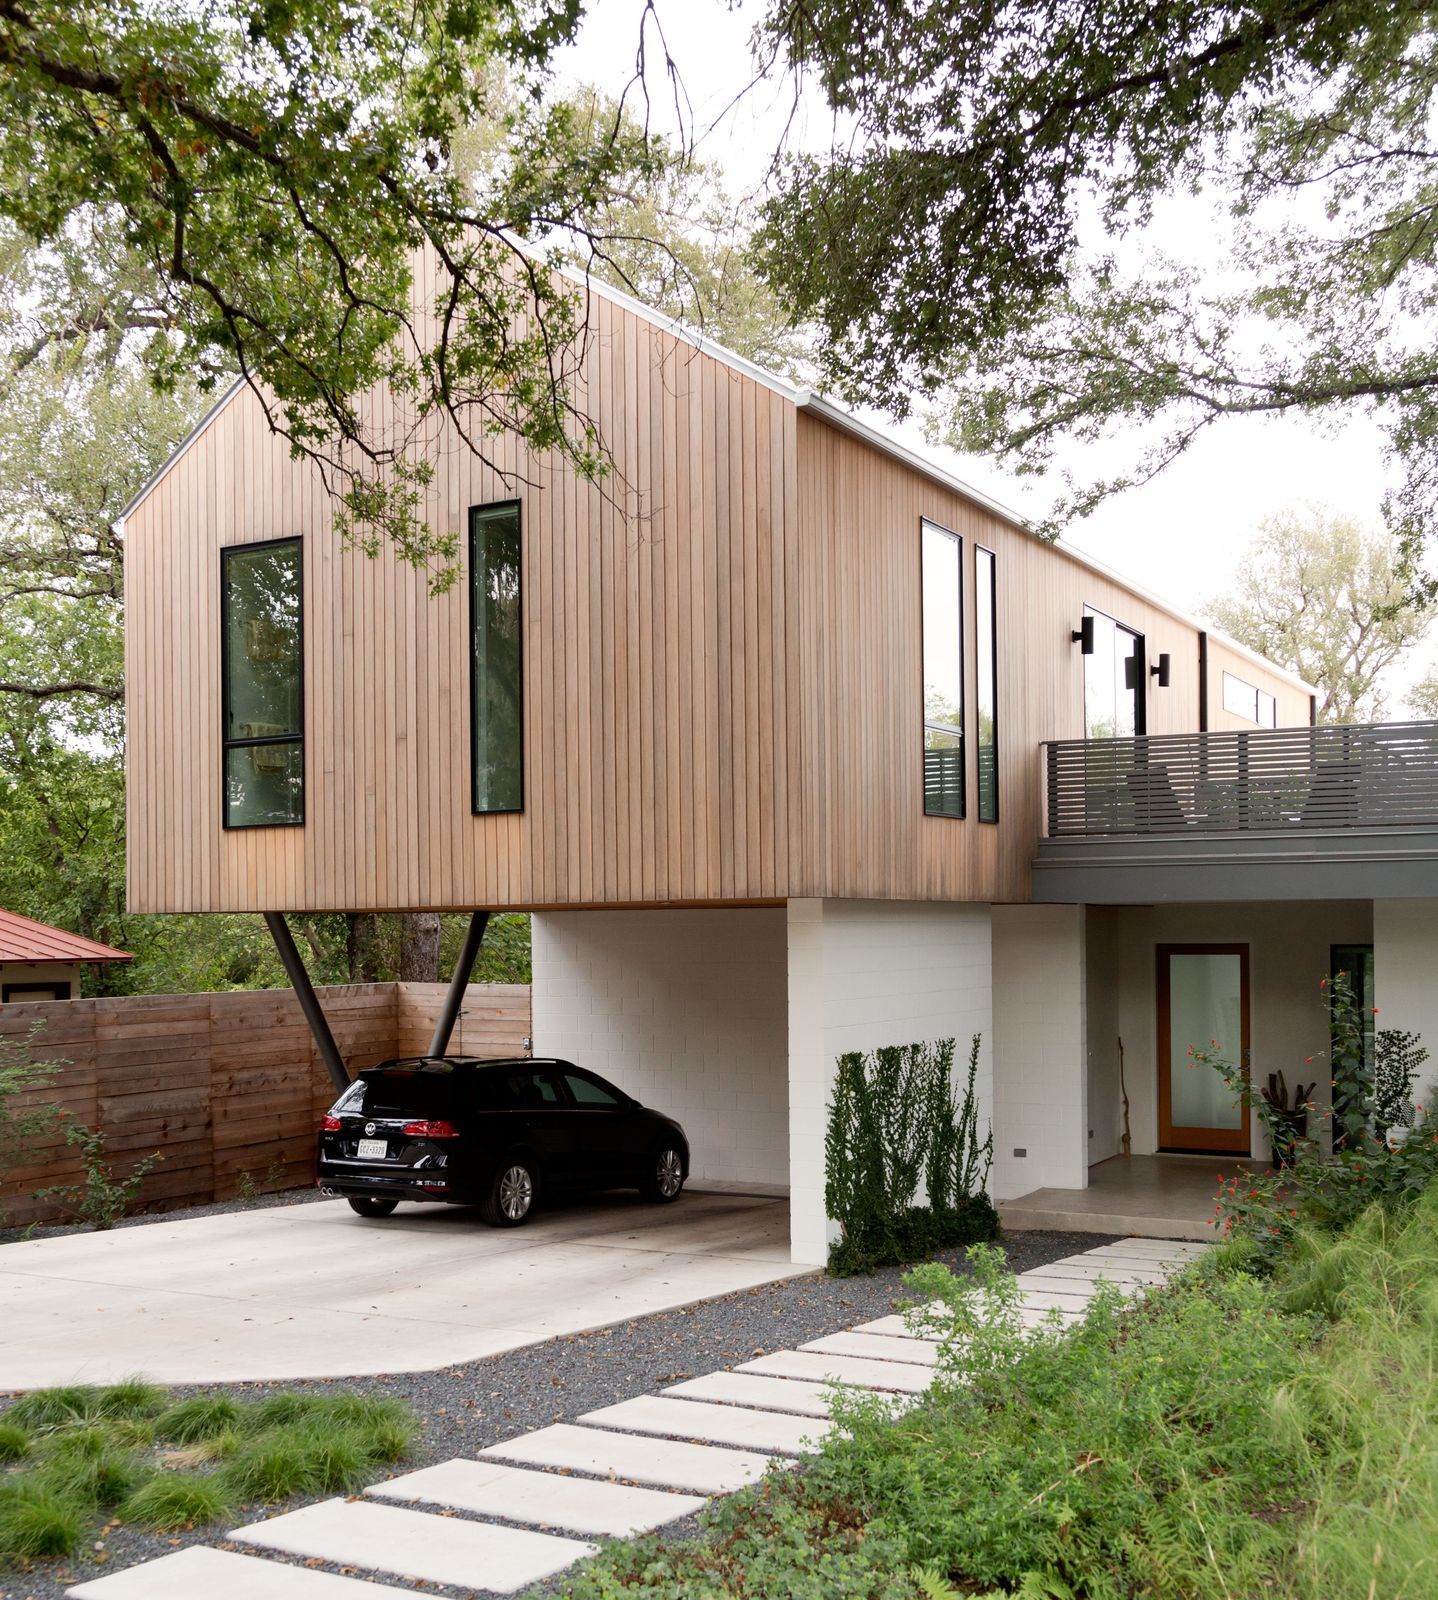 Refreshed Take On The Gable Shines In Austin's Building